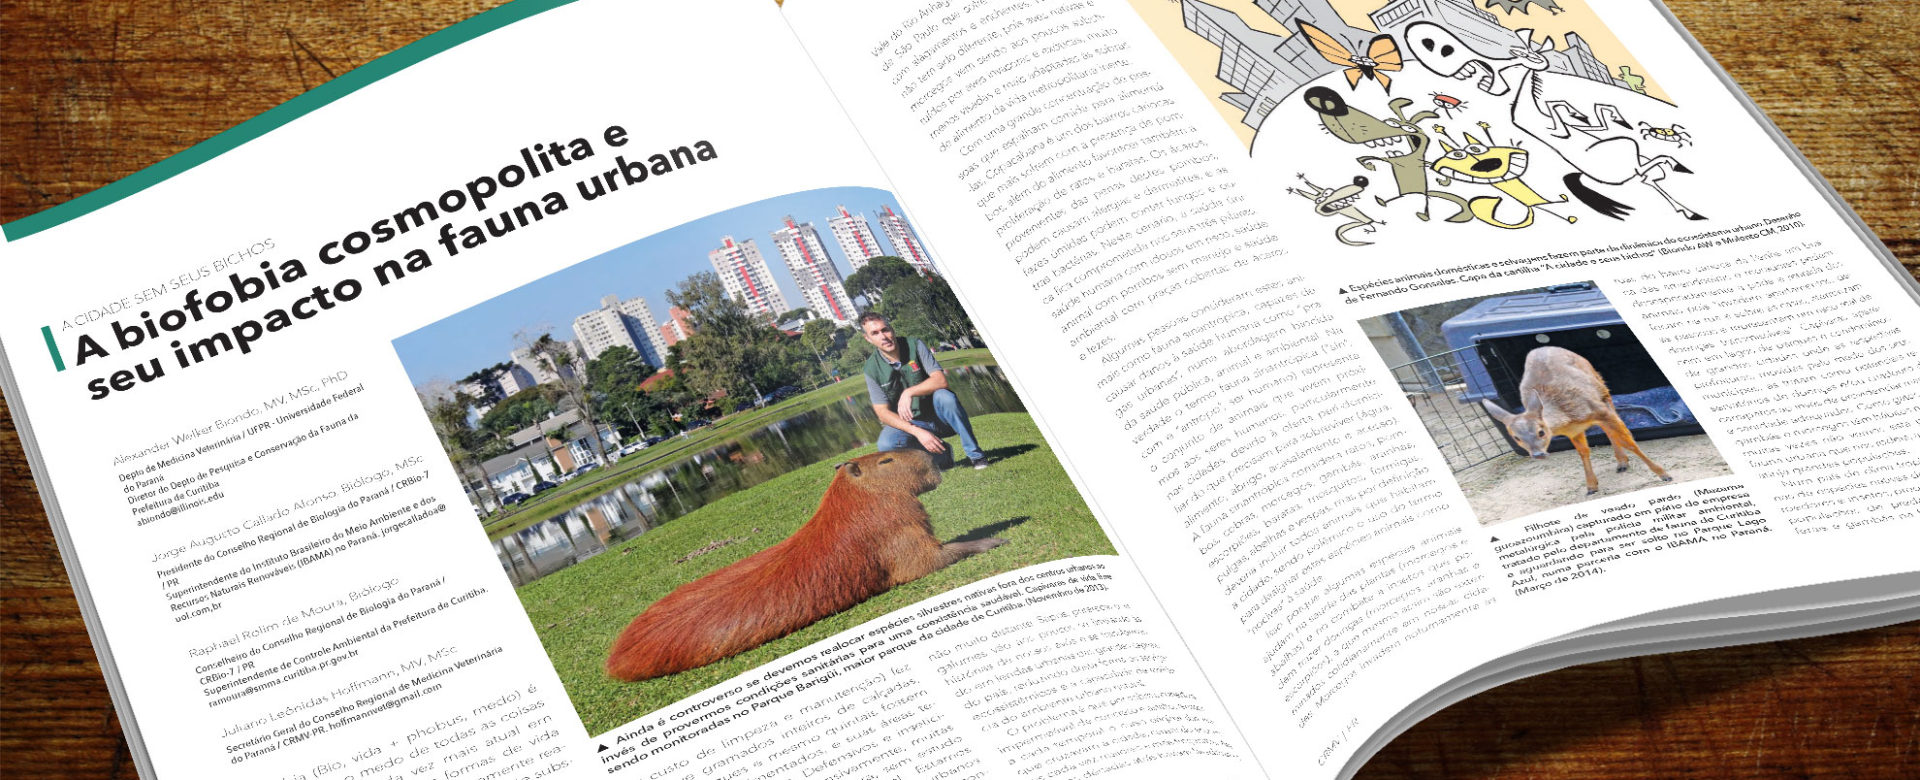 revista-veterinaria-4